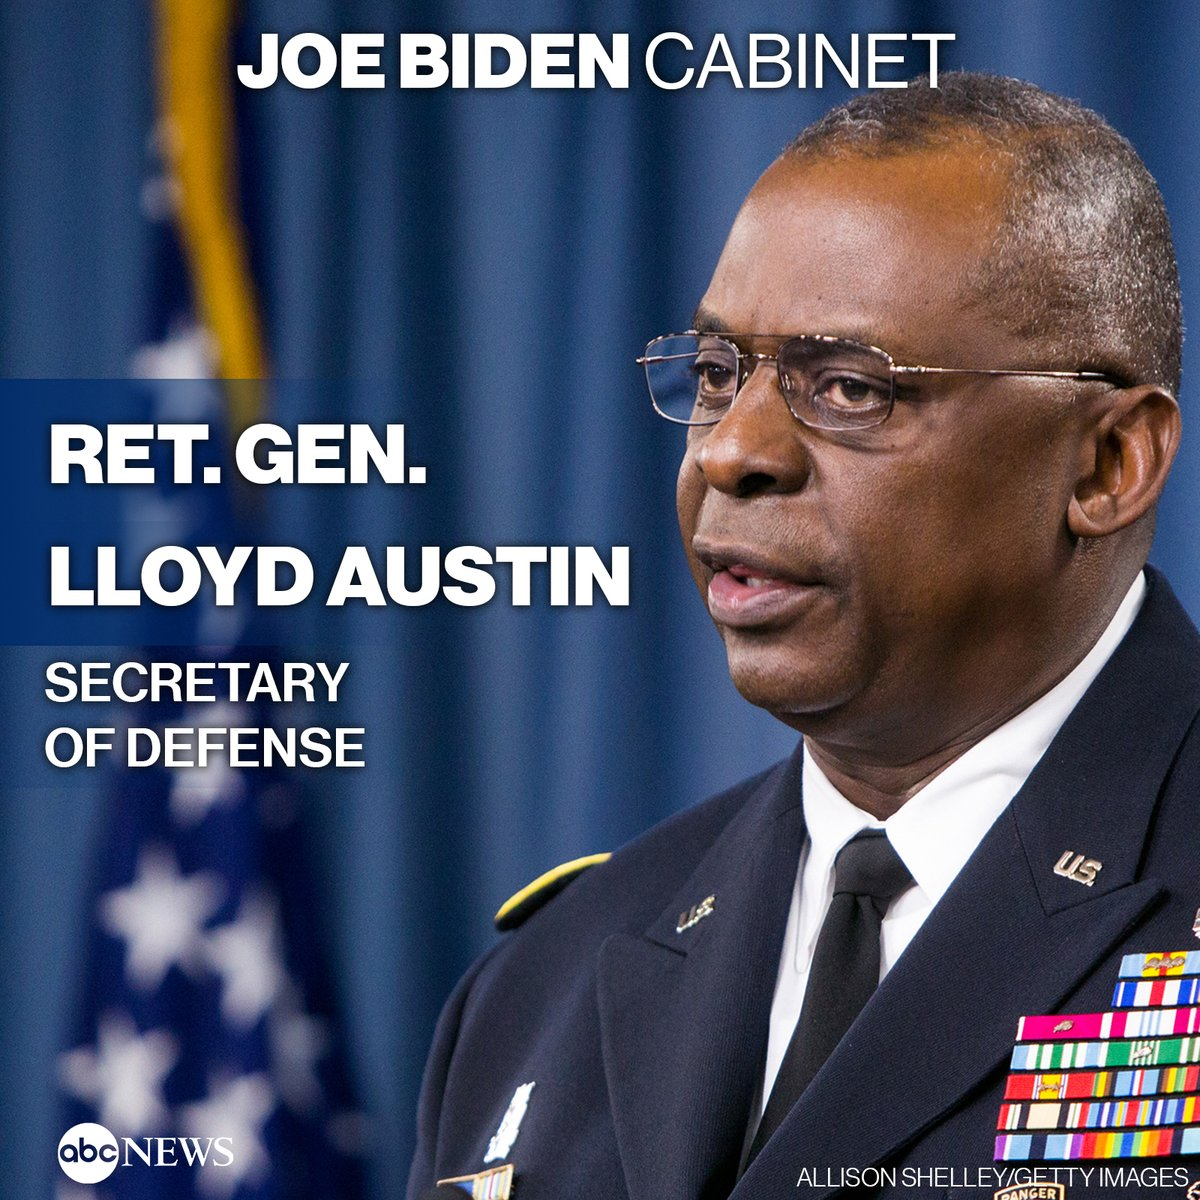 Retired U.S. Army Gen. Lloyd Austin took over as the first Black Pentagon chief shortly after being confirmed 93-2 by the Senate.